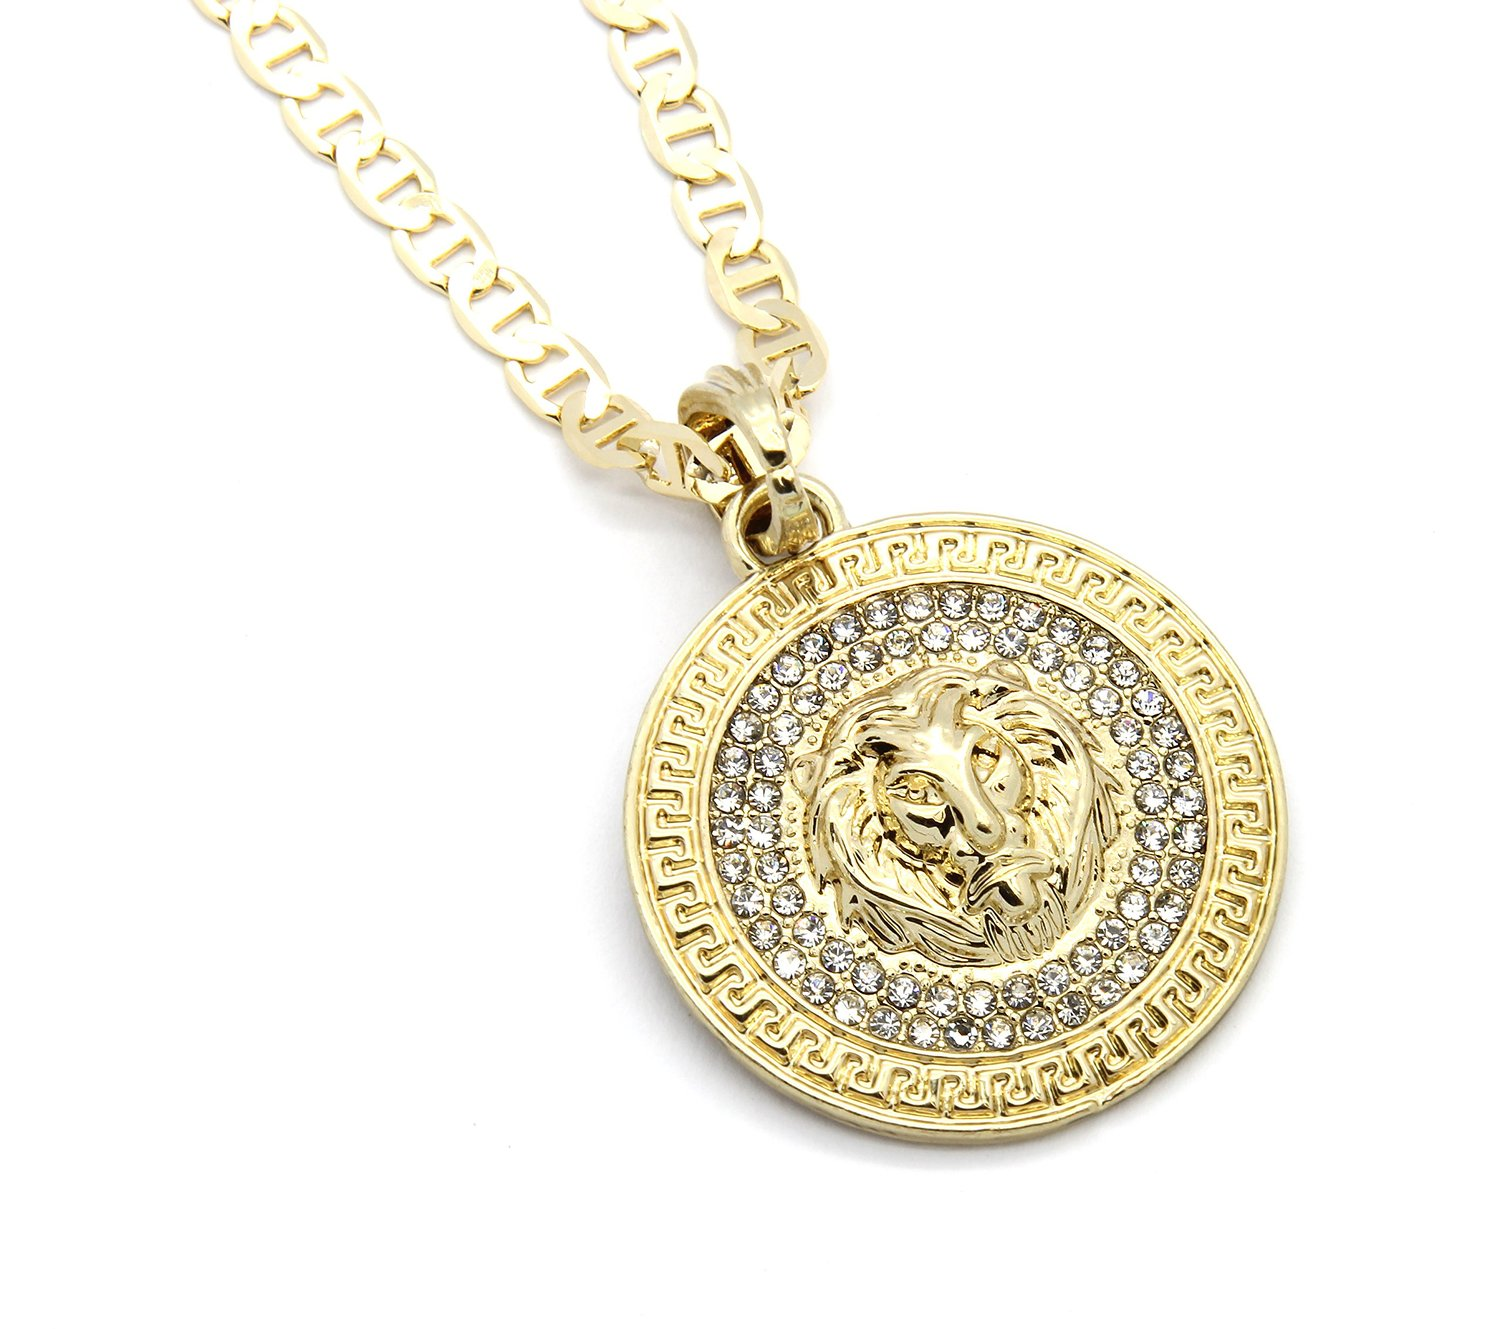 il wedding medallion round necklace dainty chain coin listing fullxfull flower modern silver everyday gold jewelry